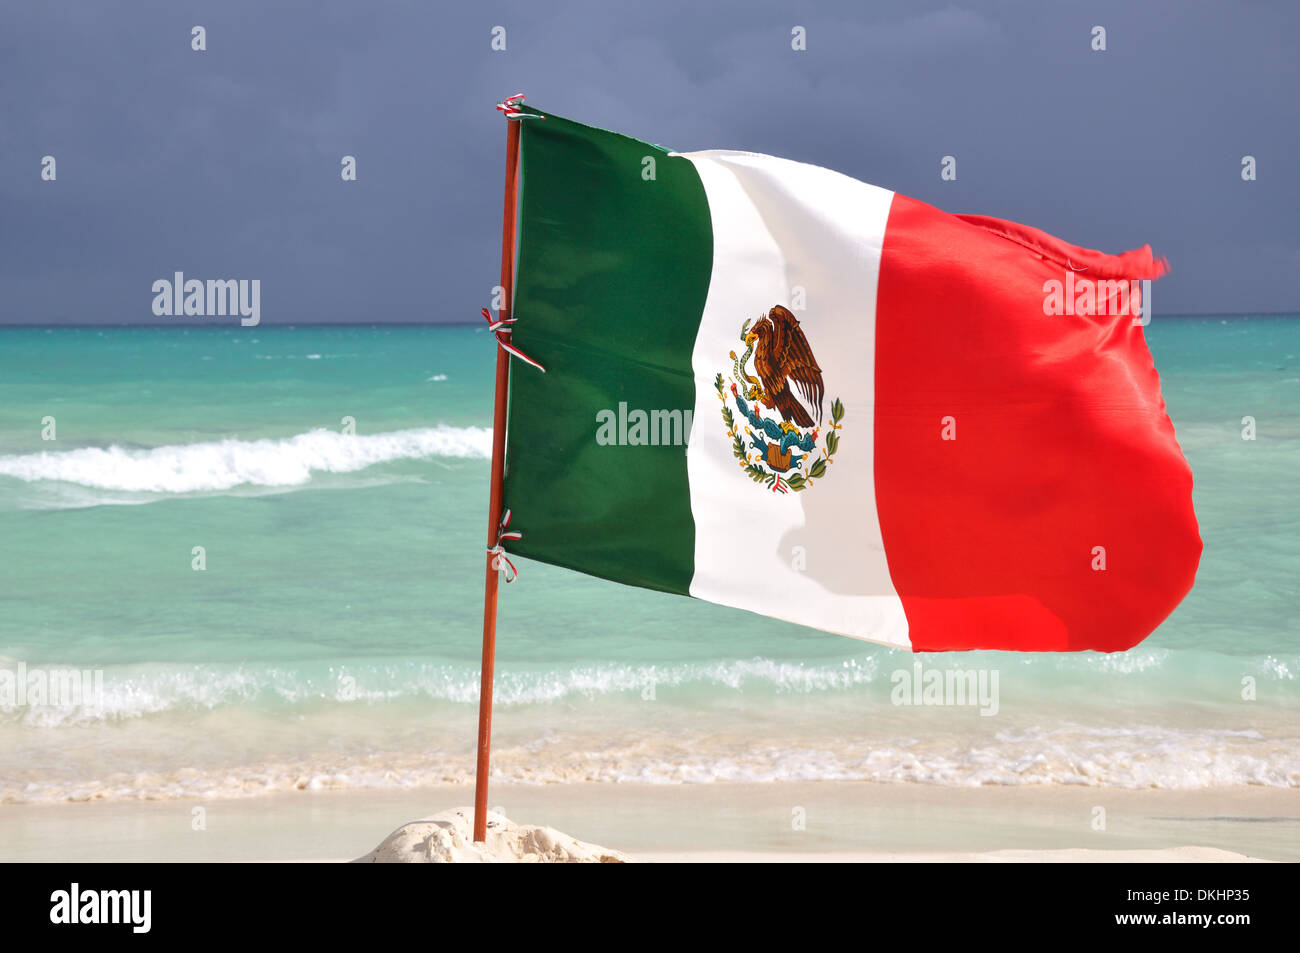 Mexican flag flying on a beachfront location - Stock Image